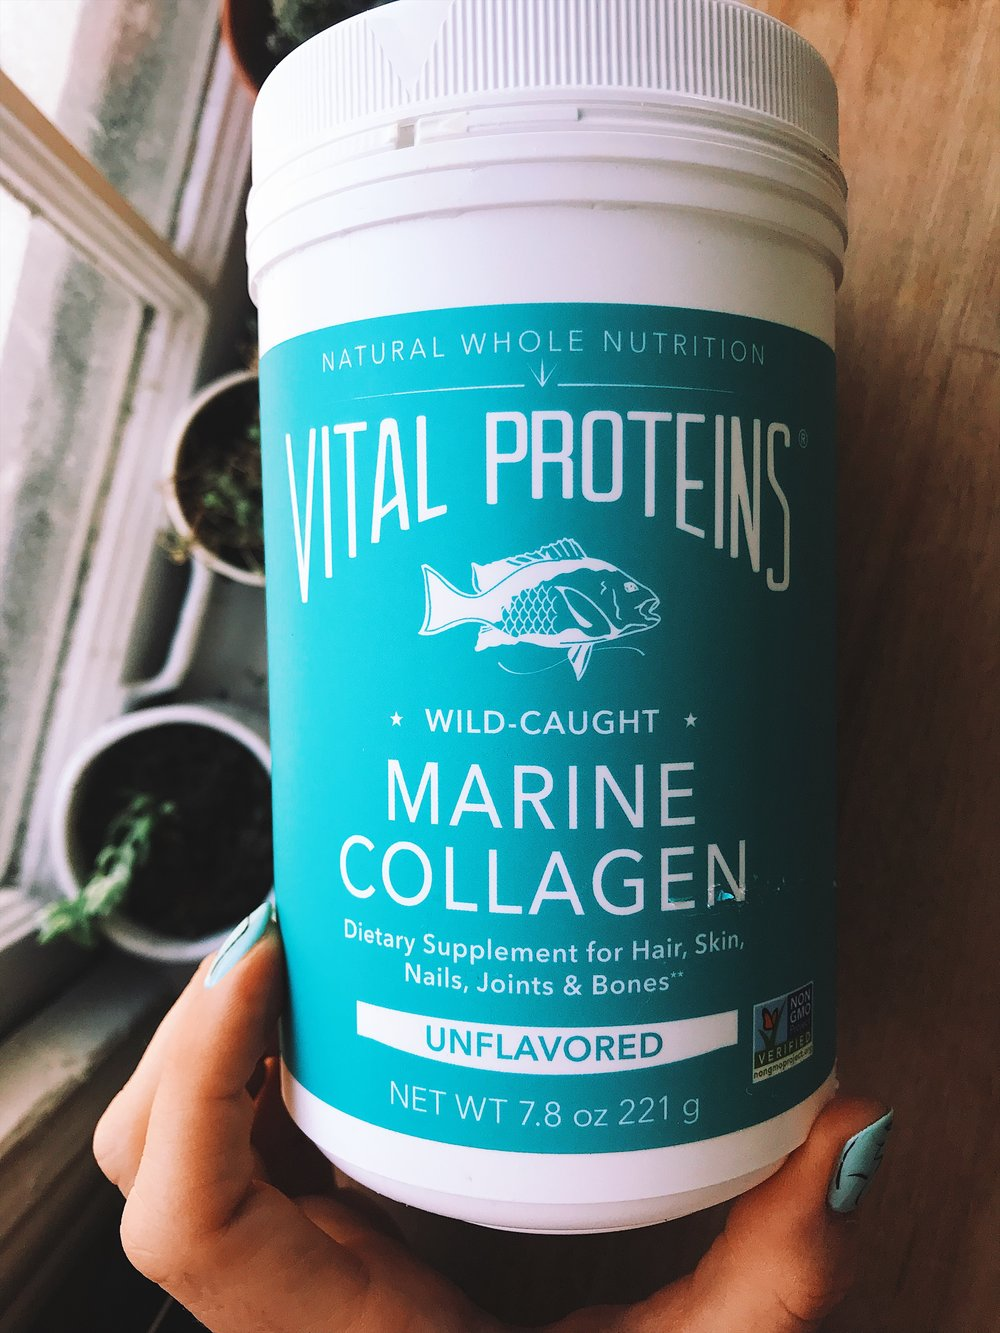 This is the marine collagen from Vital Proteins. I switch it up between the two types. And no, it does not have a fishy flavor for me.